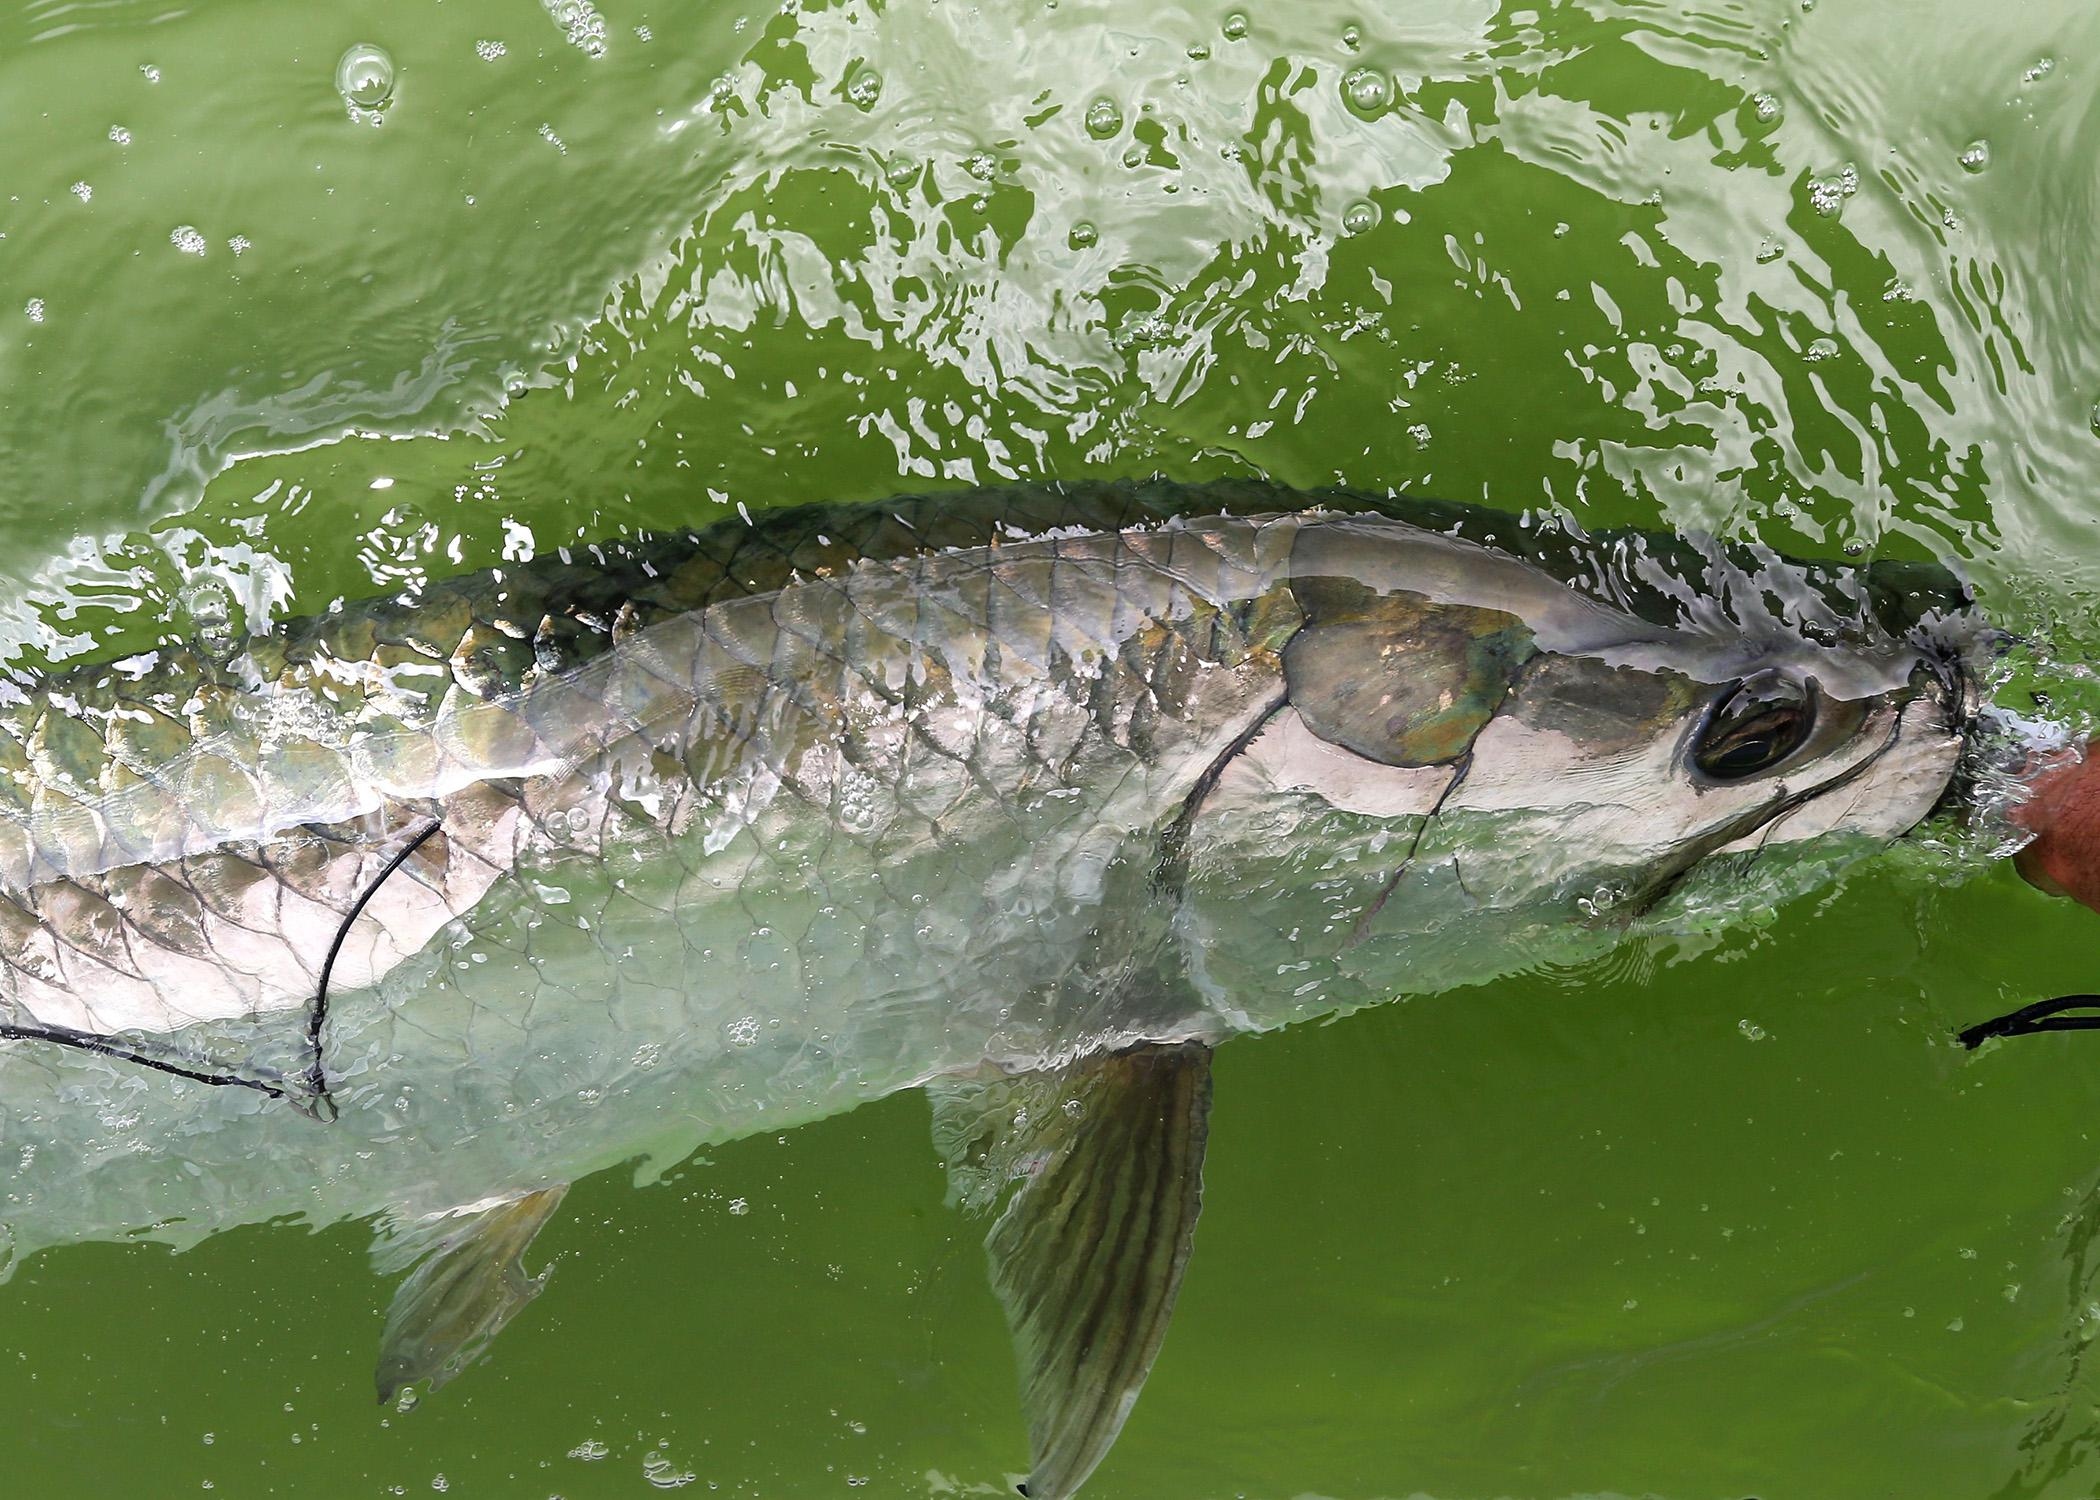 A silver fish is released into green water.